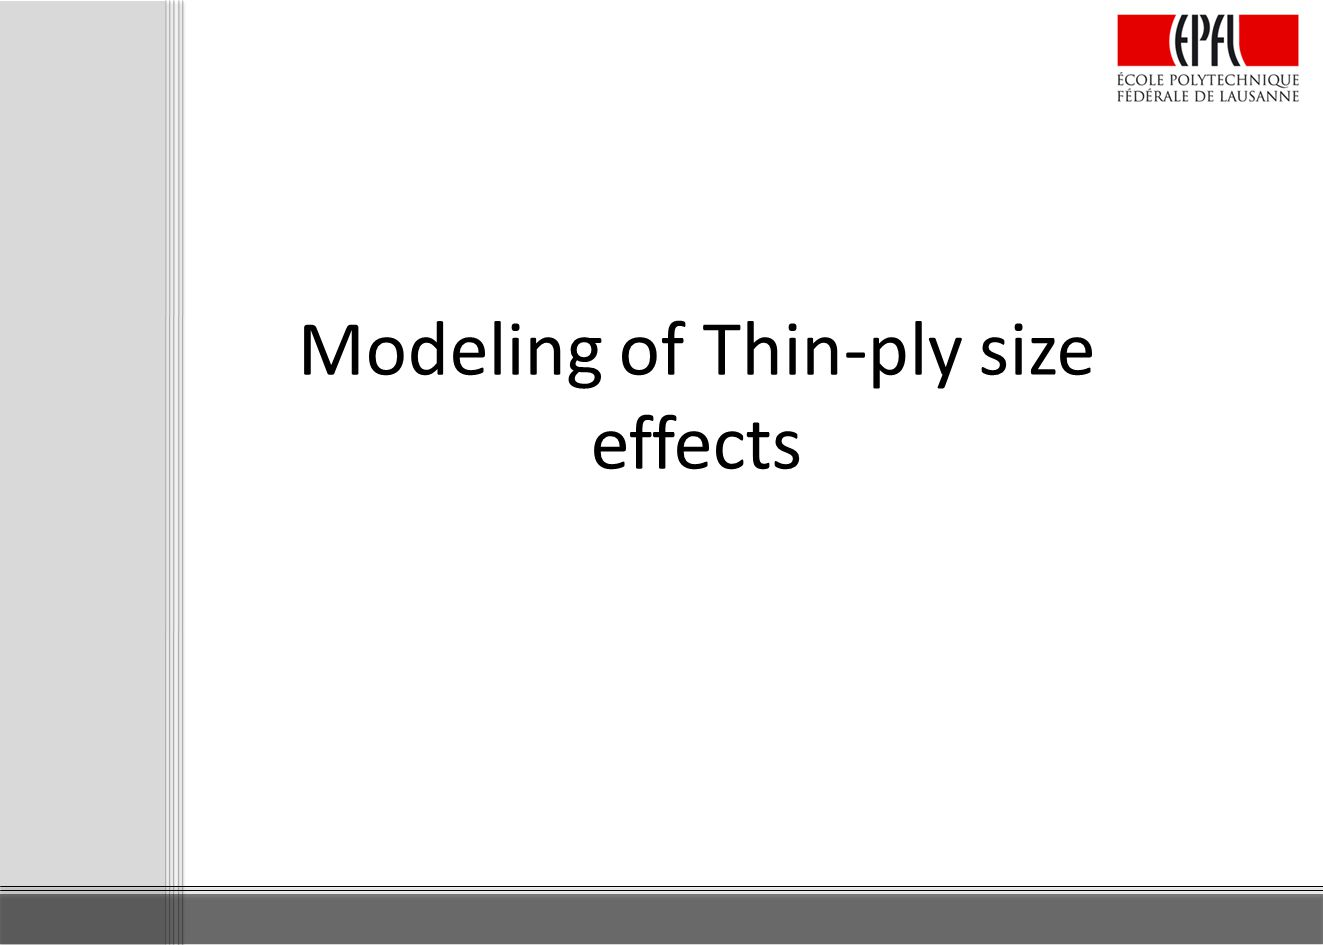 Modeling of Thin-ply size effects